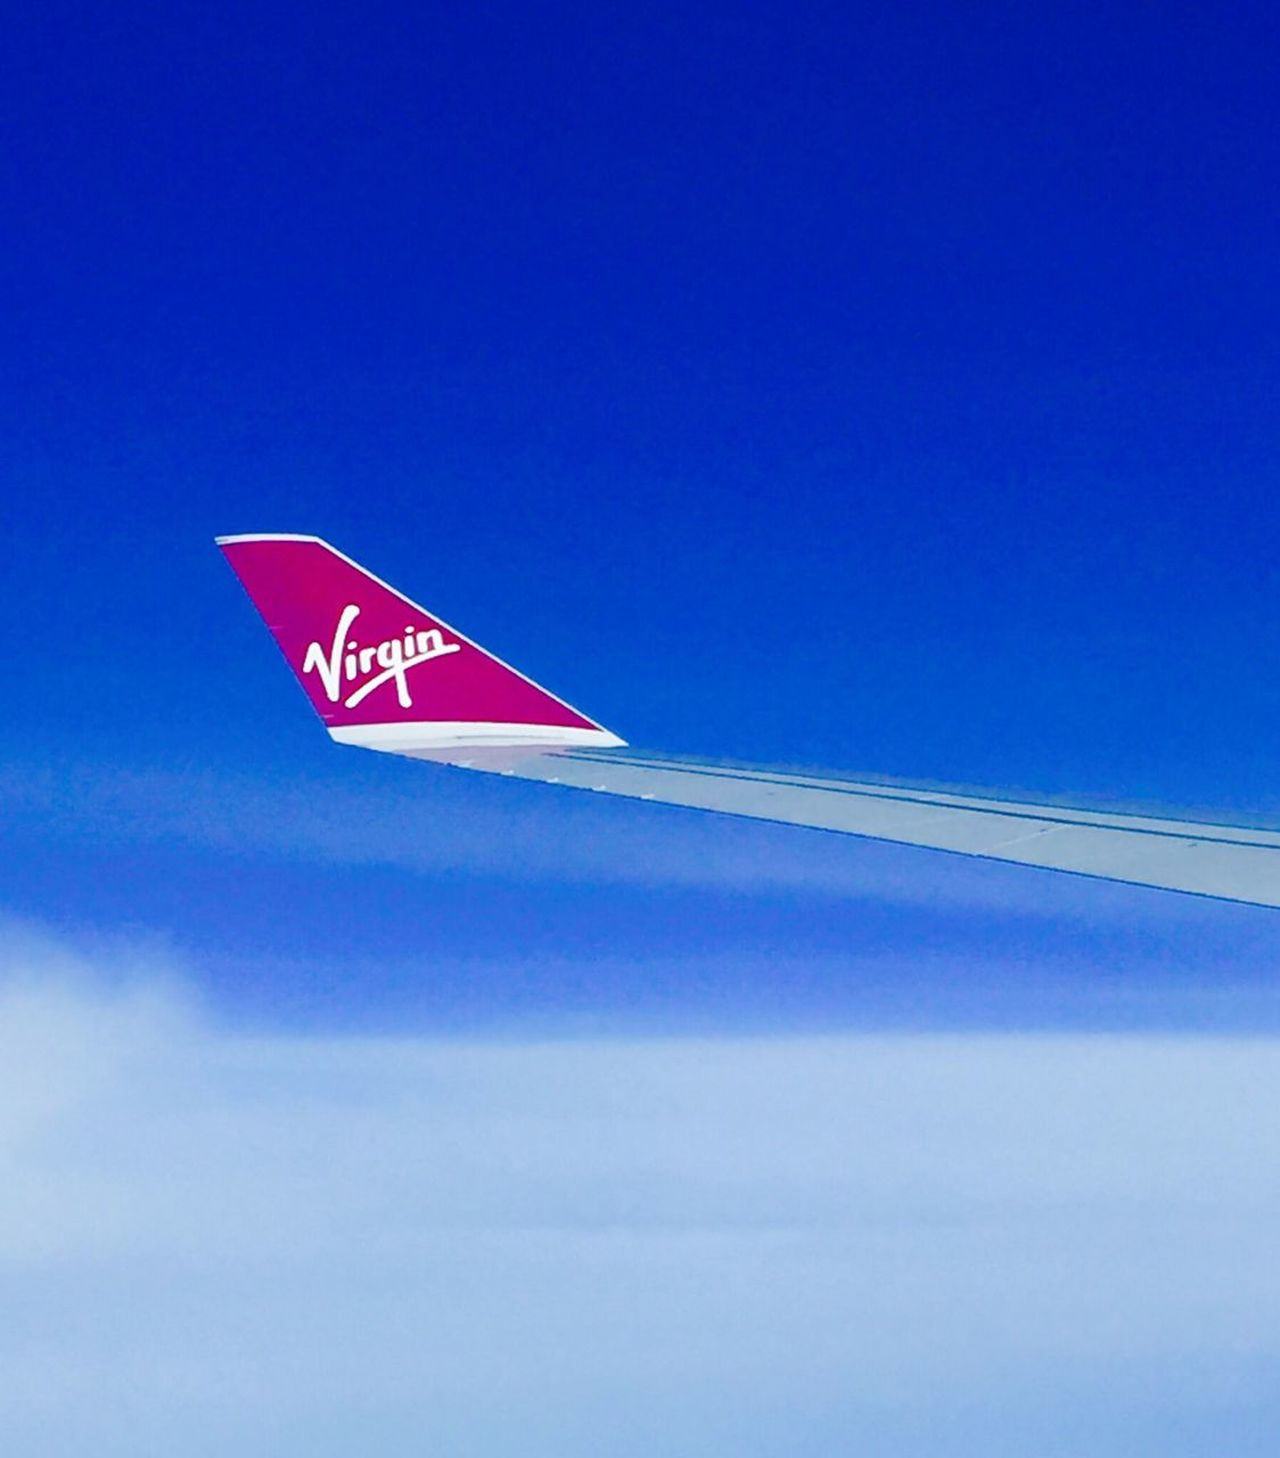 Travel Photography Traveling Sky Red Blue From My Point Of View No People Air Vehicle Eye4photography  Iponeonly EyeEm Hello World EyeEmBestPics Airplane EyeEm Best Shots Instamood Mode Of Transport Outdoors Commercial Airplane Day Low Angle View Nature Close-up virfi Virgin Atlantic Intheair The Great Outdoors - 2017 EyeEm Awards